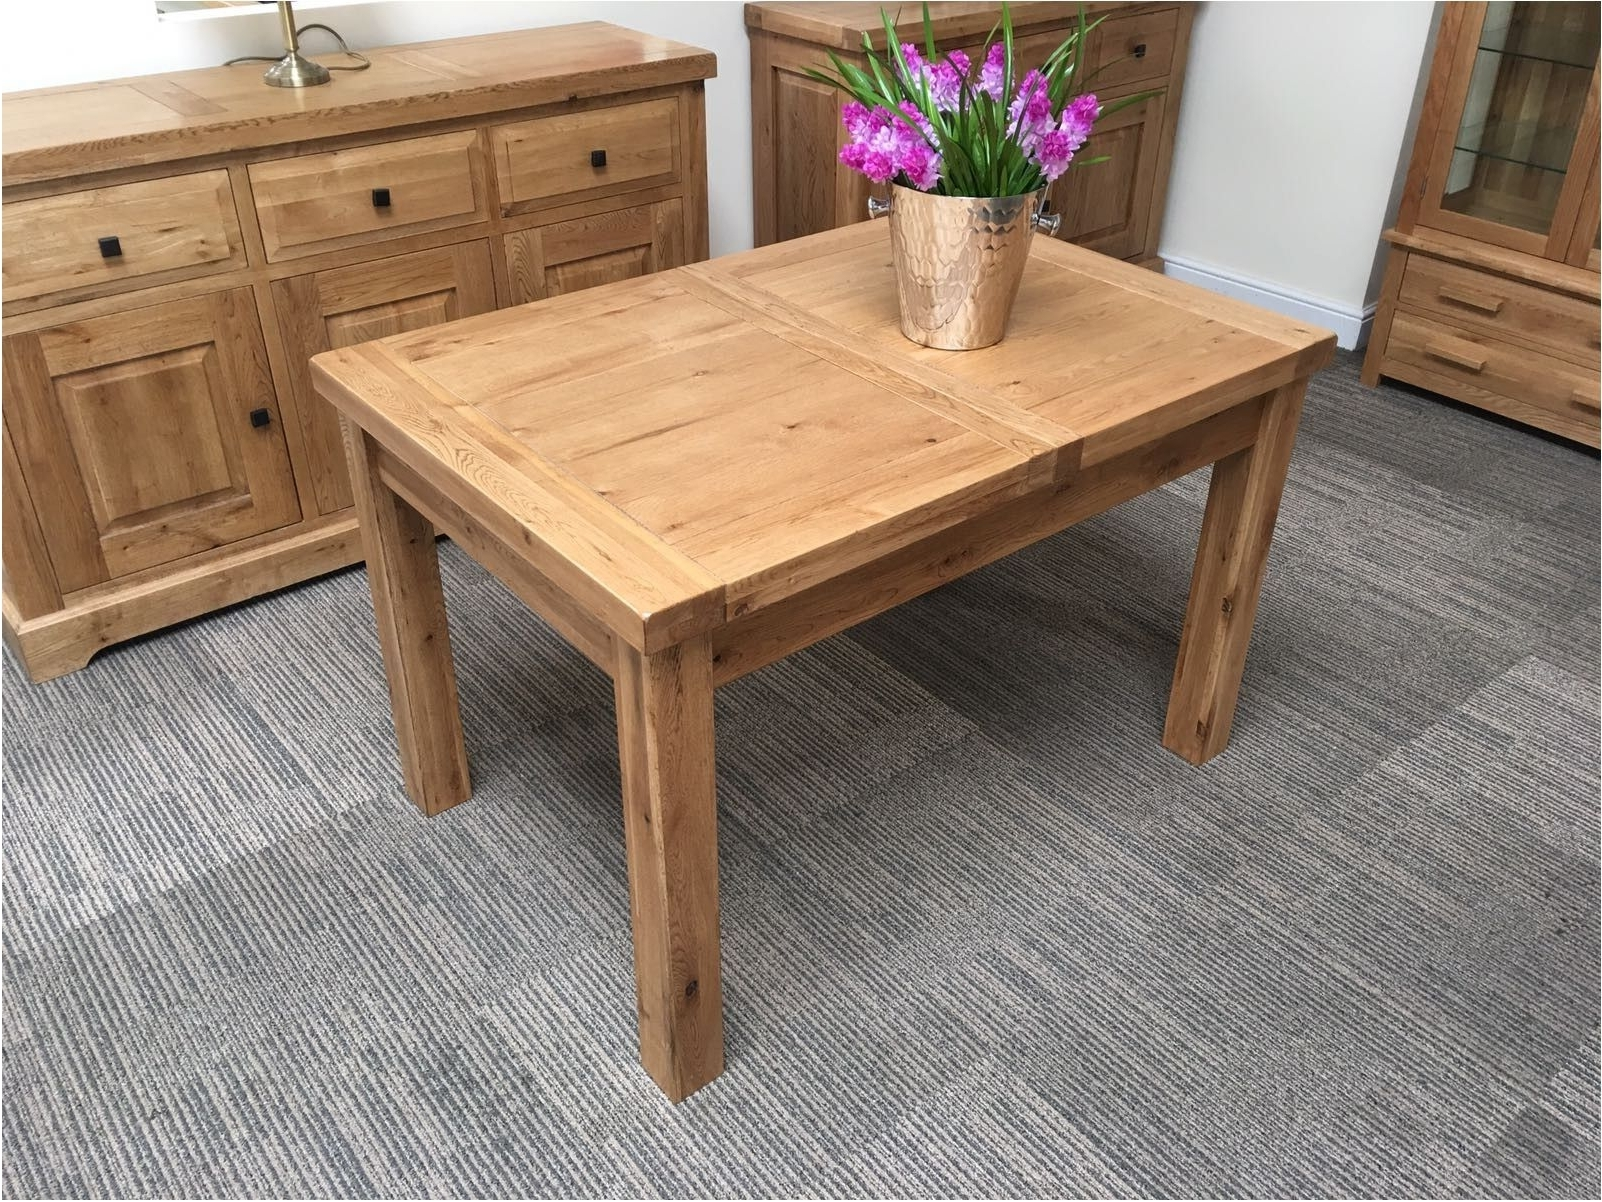 Fashionable Solid Oak Dining Tables Intended For Excellently Oxford Solid Oak Extending Dining Table Oak Furniture (View 1 of 25)